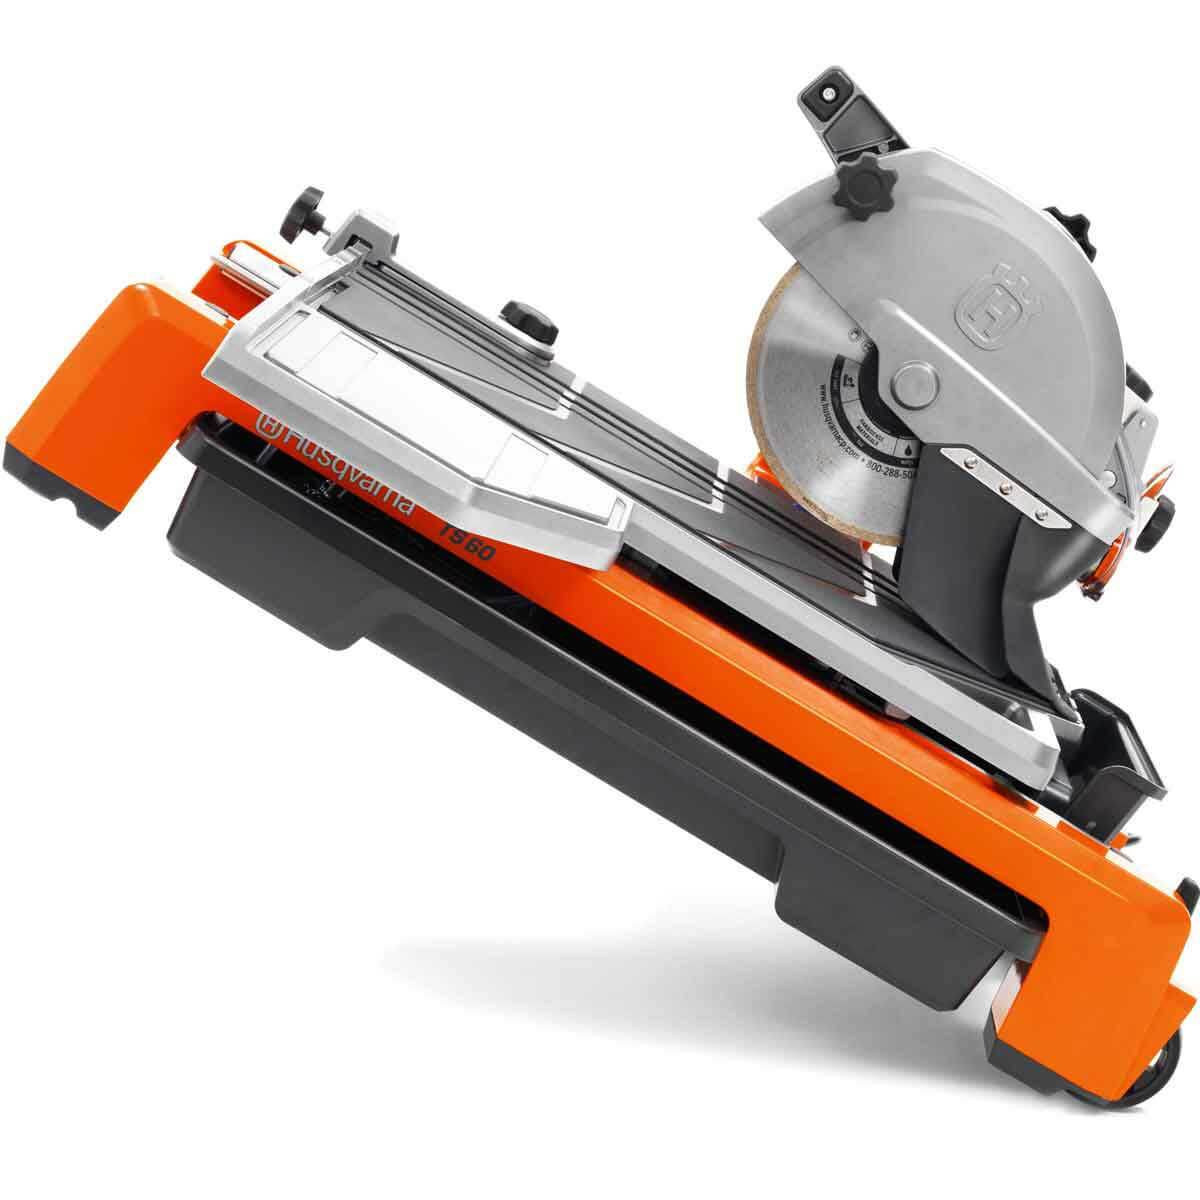 Husqvarna TS60 lightweight tile saw